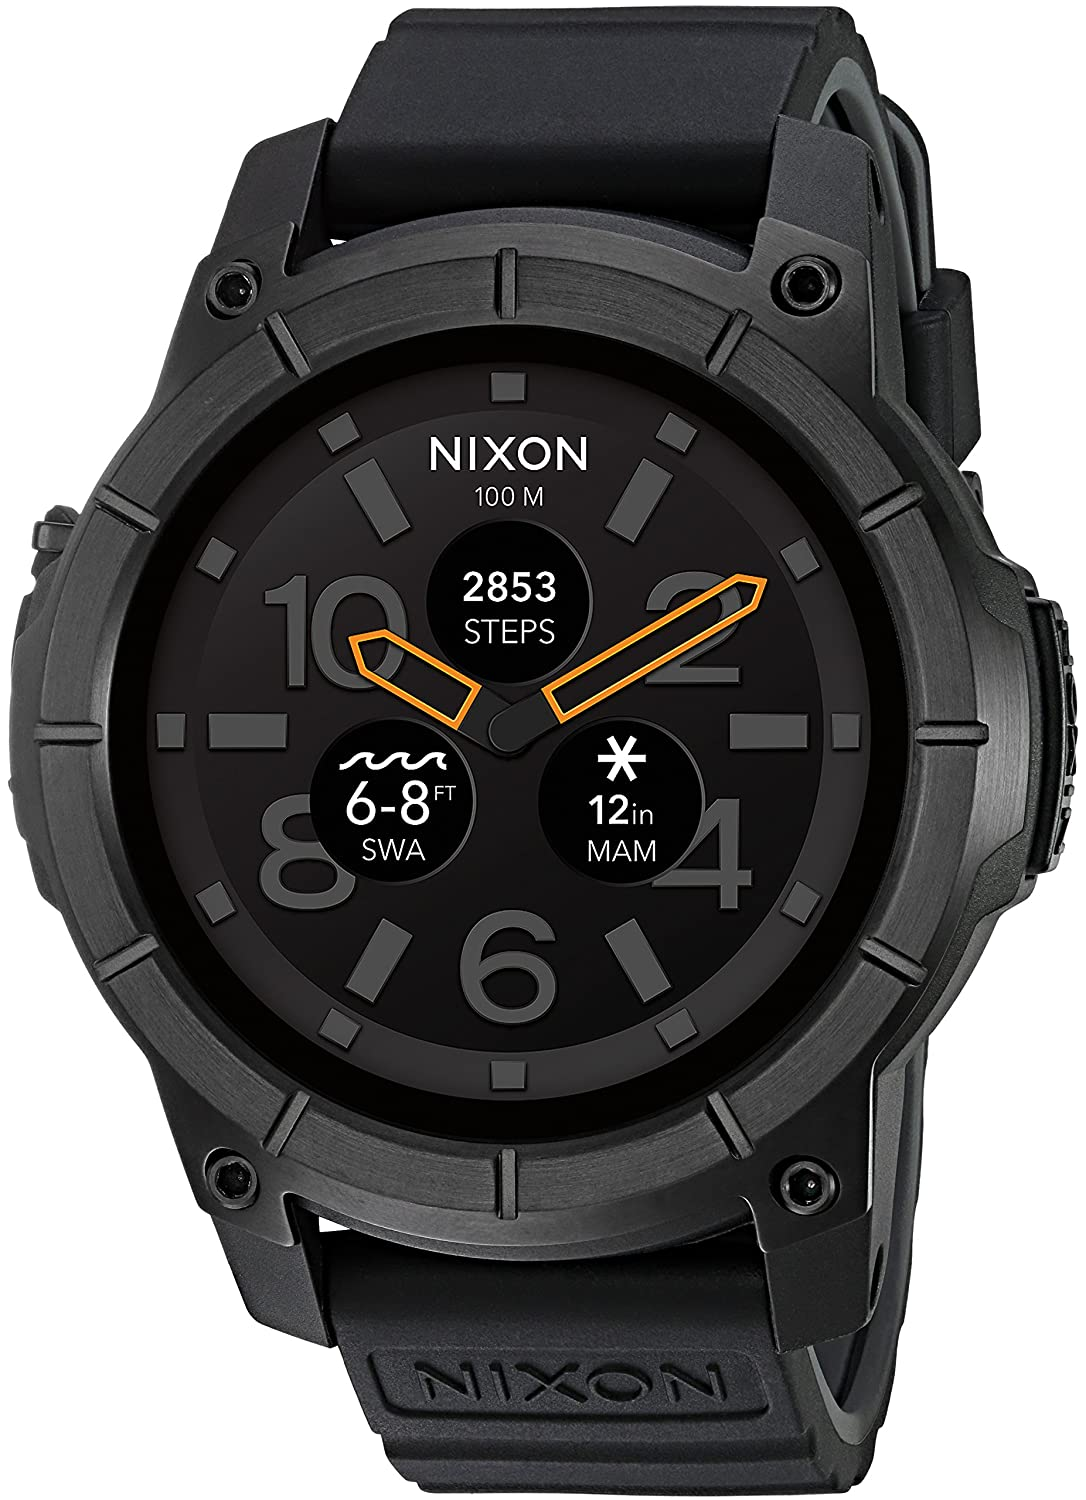 Nixon Mission Action Sports Smartwatch A1167. 10 ATM Water Resistant and Shock Resistant Mens Watch (48mm. Silicone Band)